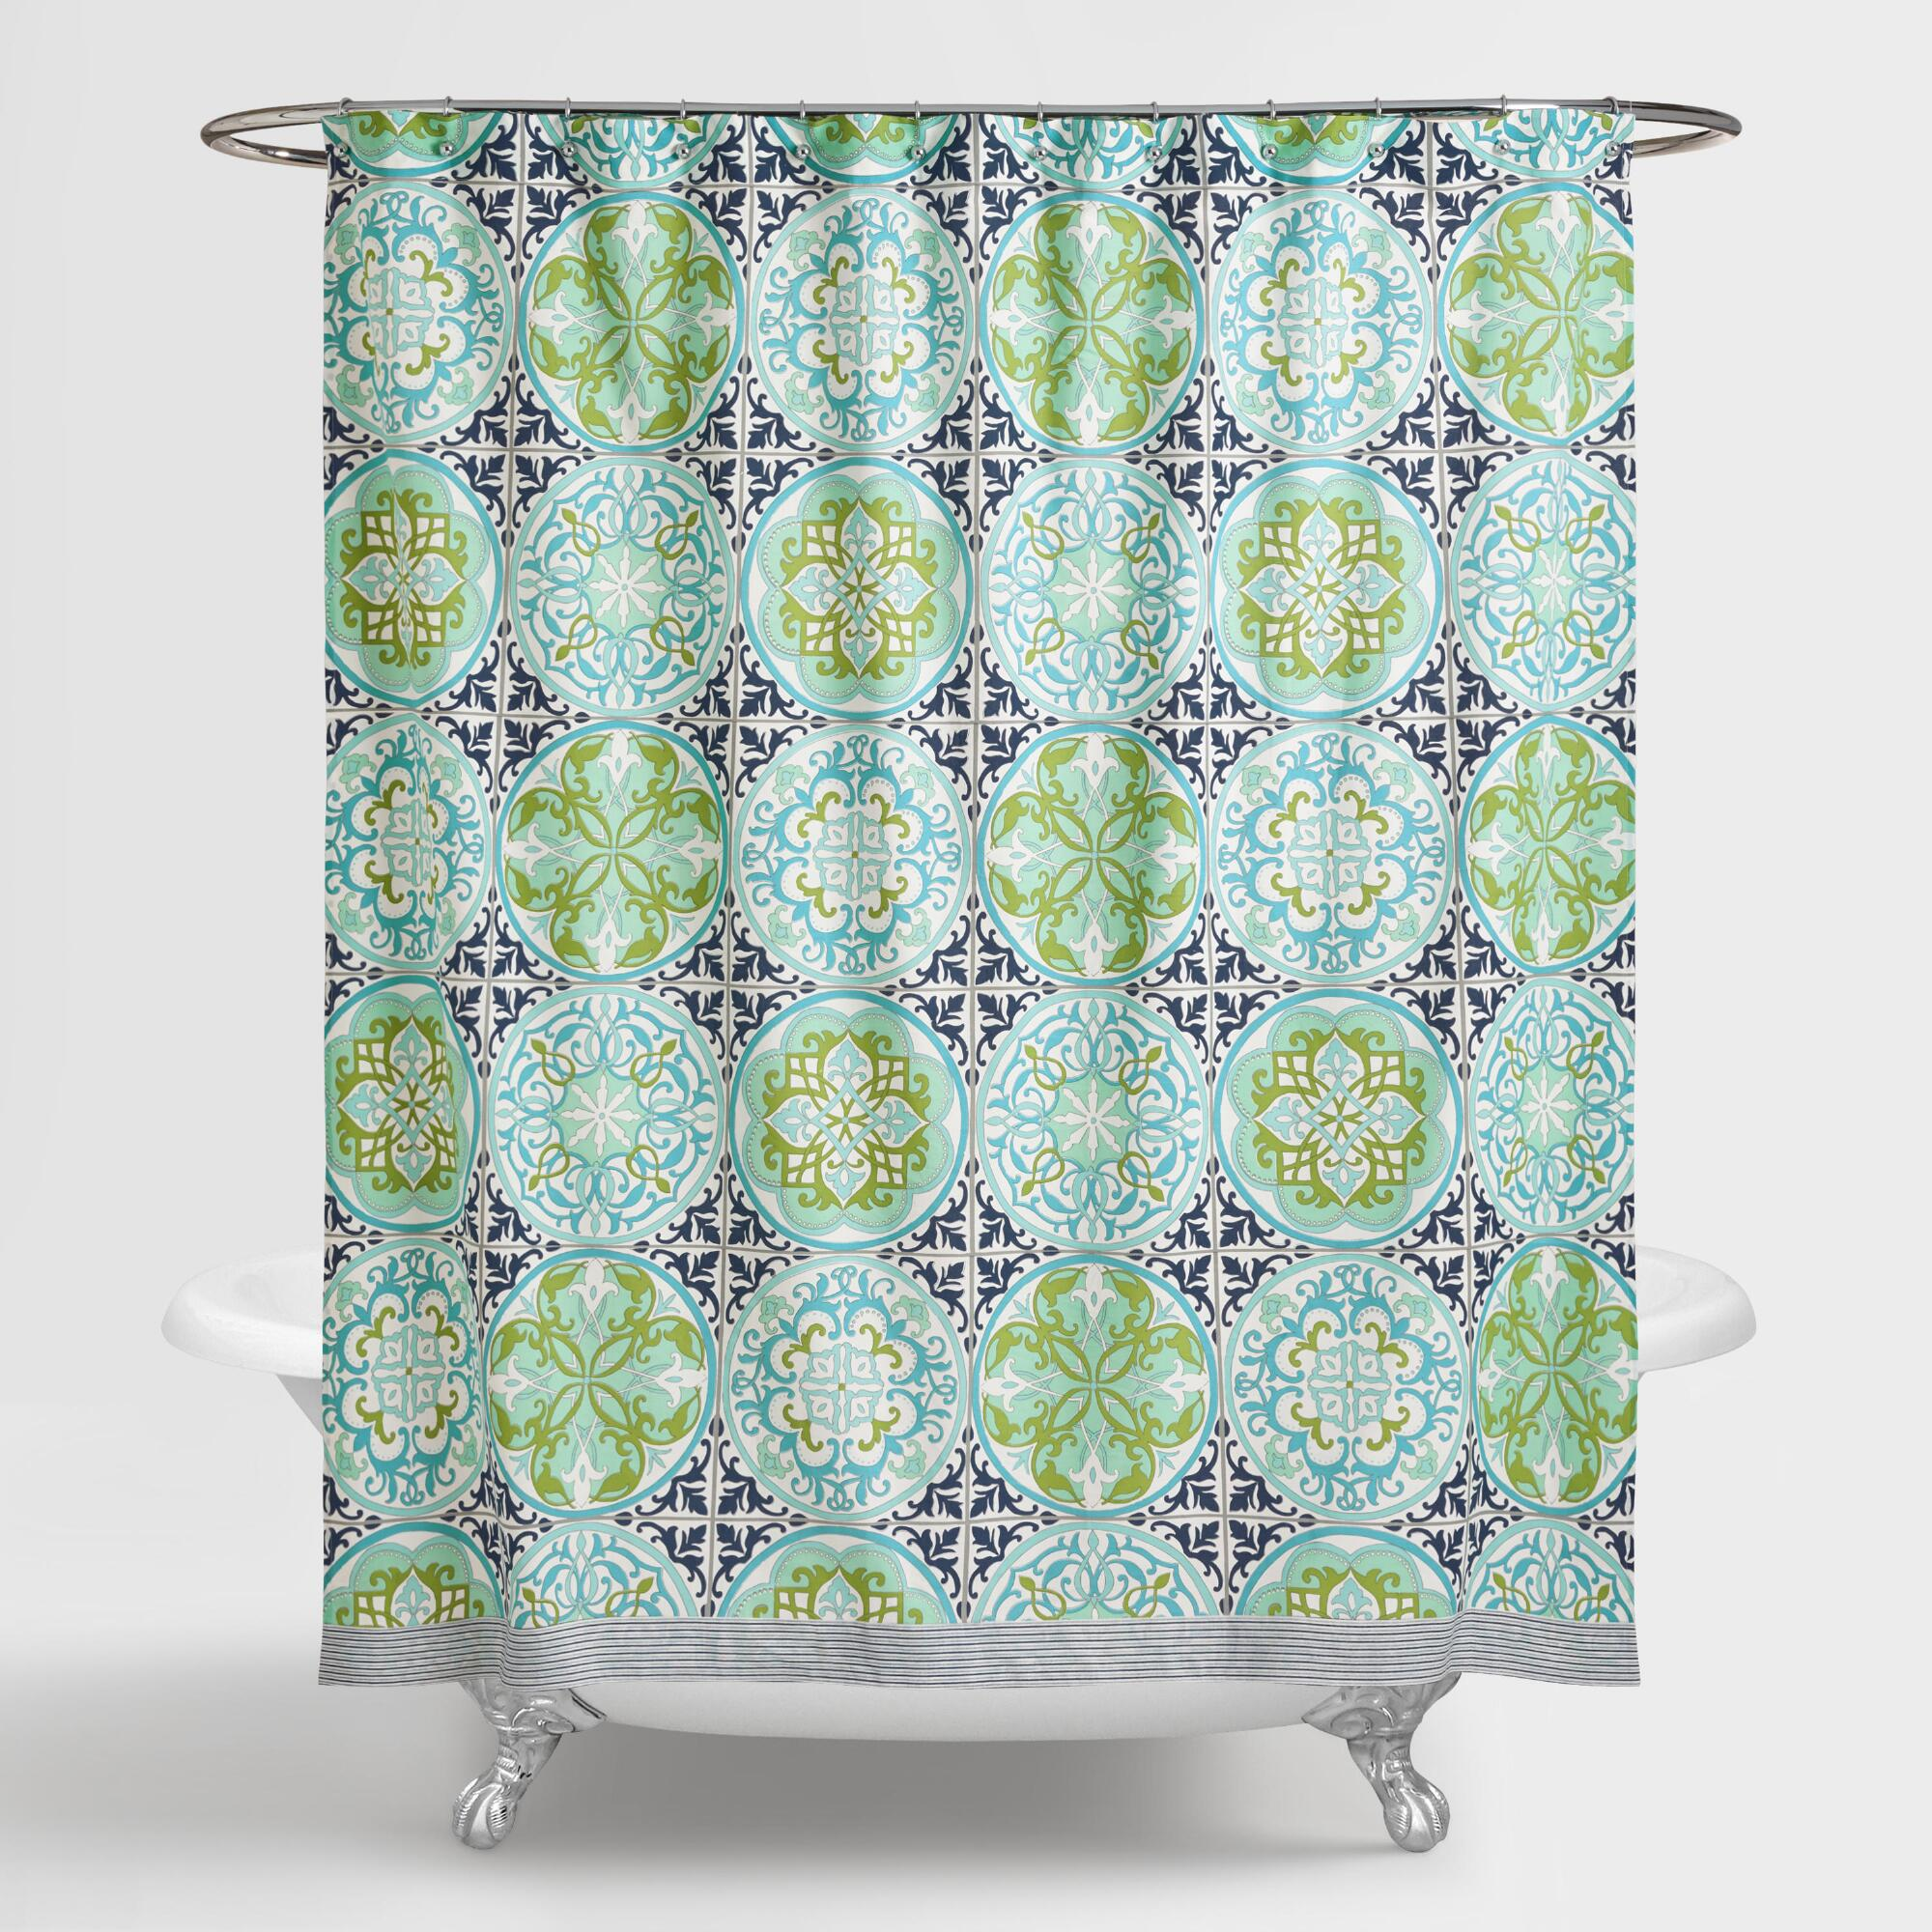 blue and green gabriella shower curtain world market. Black Bedroom Furniture Sets. Home Design Ideas